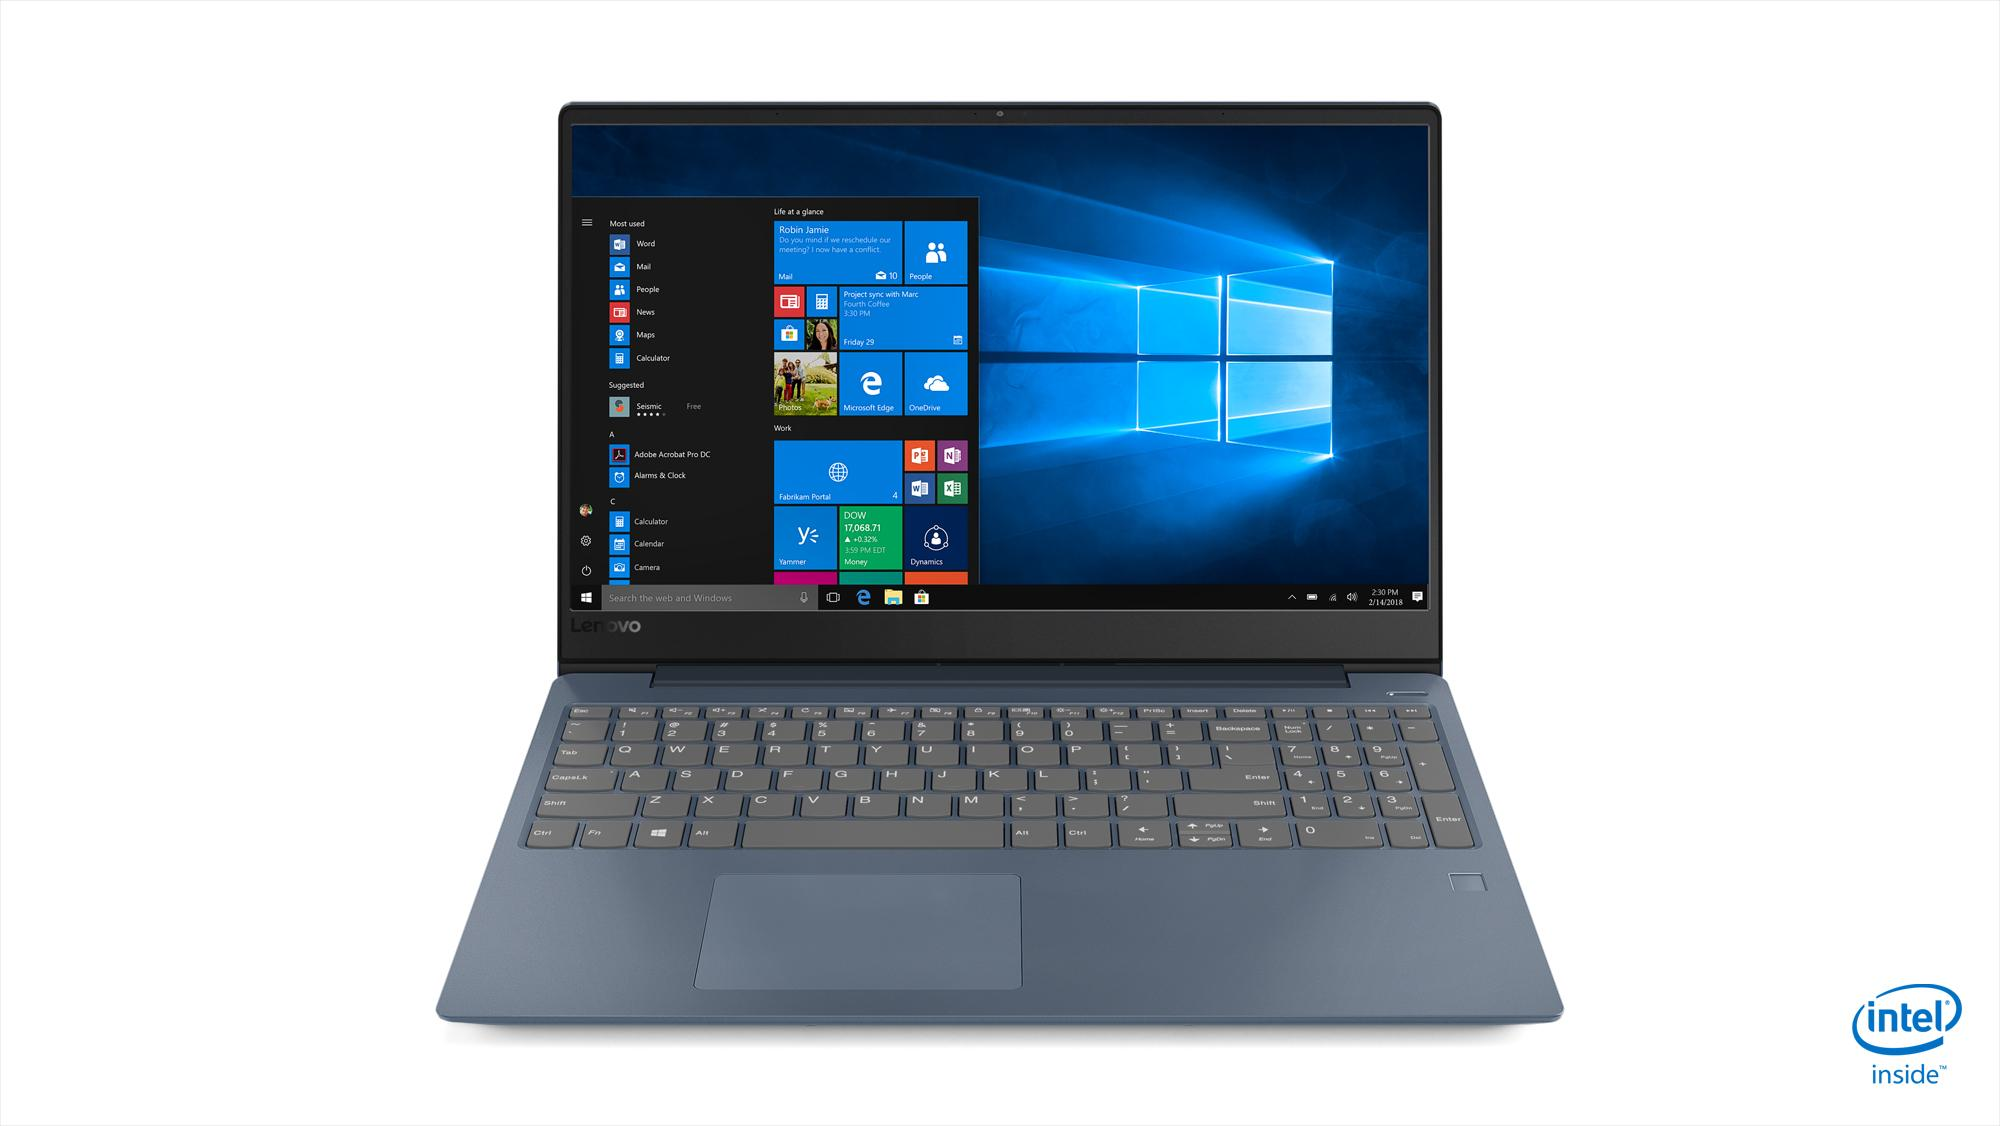 Lenovo Ultraslim Ideapad 330S 15.6 i7-8550U 8GB Midnight Blue (81GC007YSB)